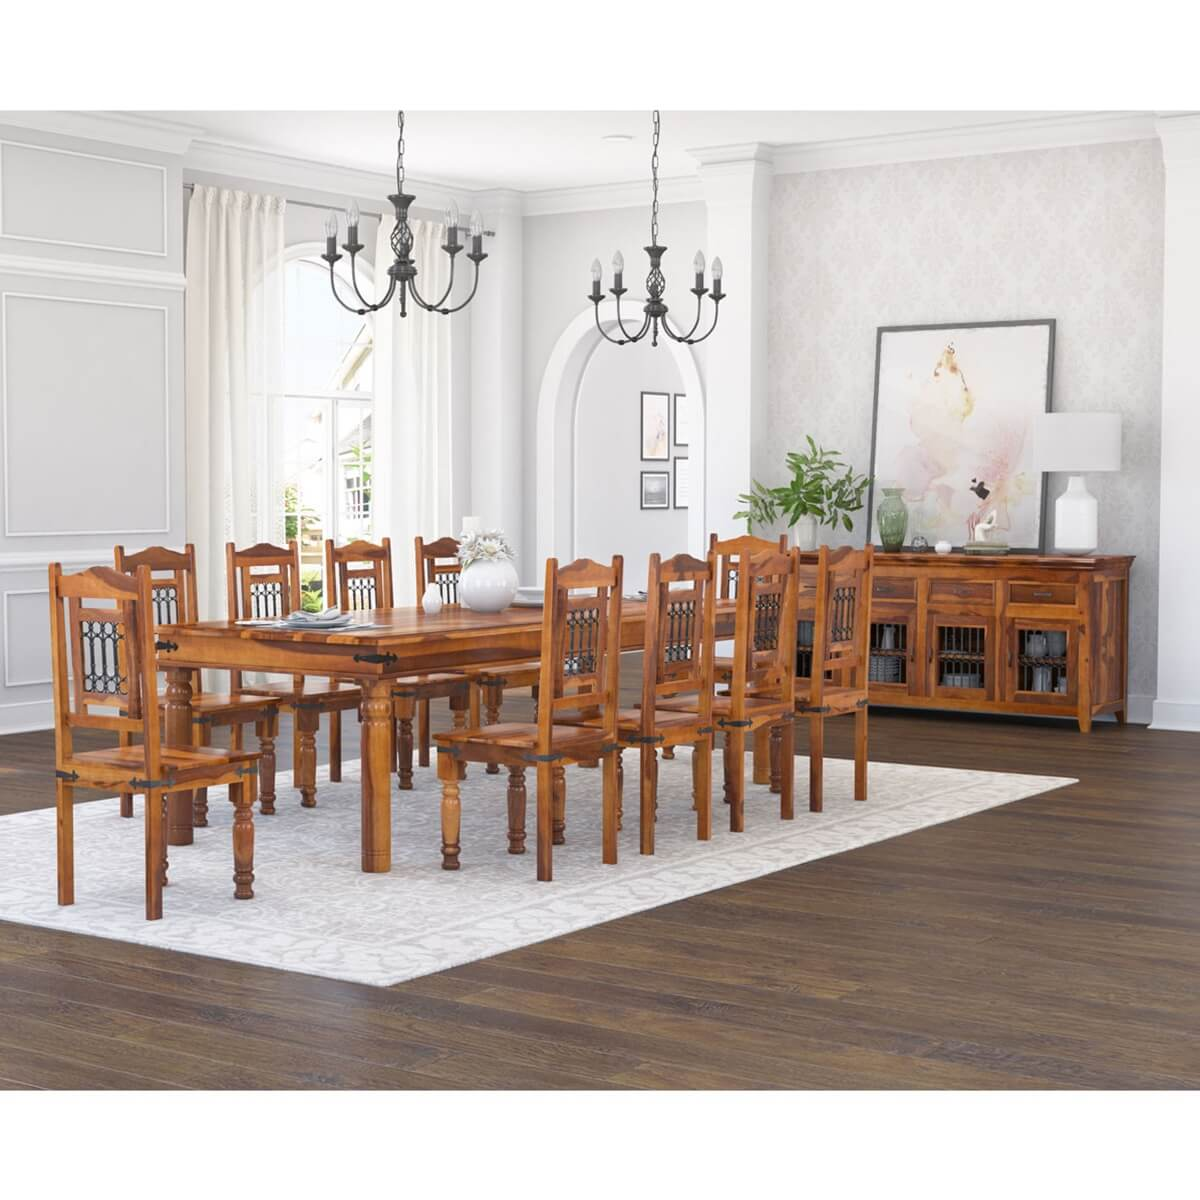 Solid wood dining room sets 28 images no stain solid for Solid wood formal dining room sets